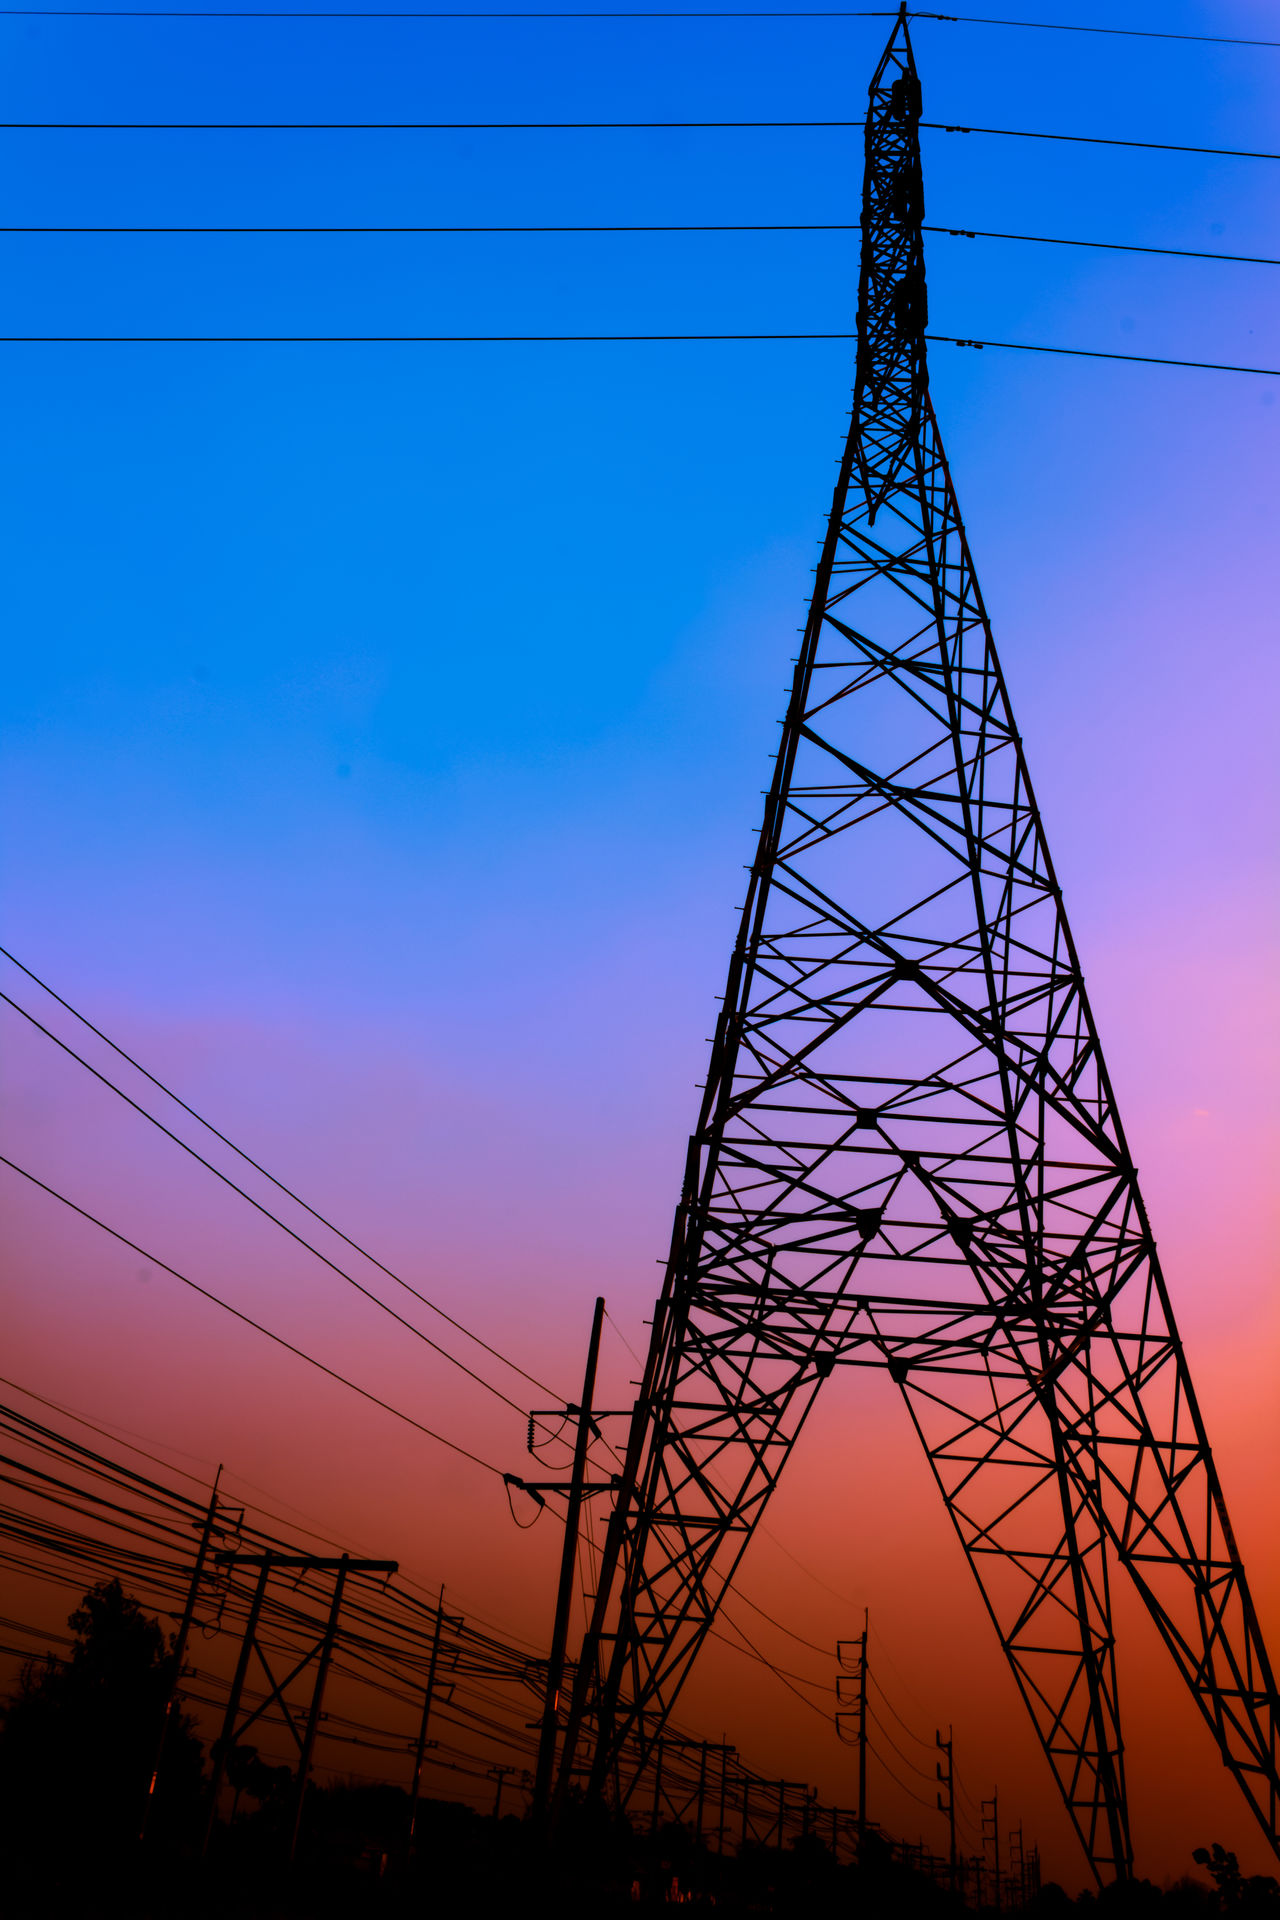 Electric Electric Lines Electric Pole Electric Tower  Electric Wire Electric Wires Electricity  Electricity Pylon Electricity Tower Industrial Industrial Area Industrial Building  Industrial Landscapes Industrial Photography Industrialbeauty Industry No People Outdoors Sillhouette Sillouette Sillouettes Sunrise Sunset Sunset #sun #clouds #skylovers #sky #nature #beautifulinnature #naturalbeauty #photography #landscape Sunset Silhouettes